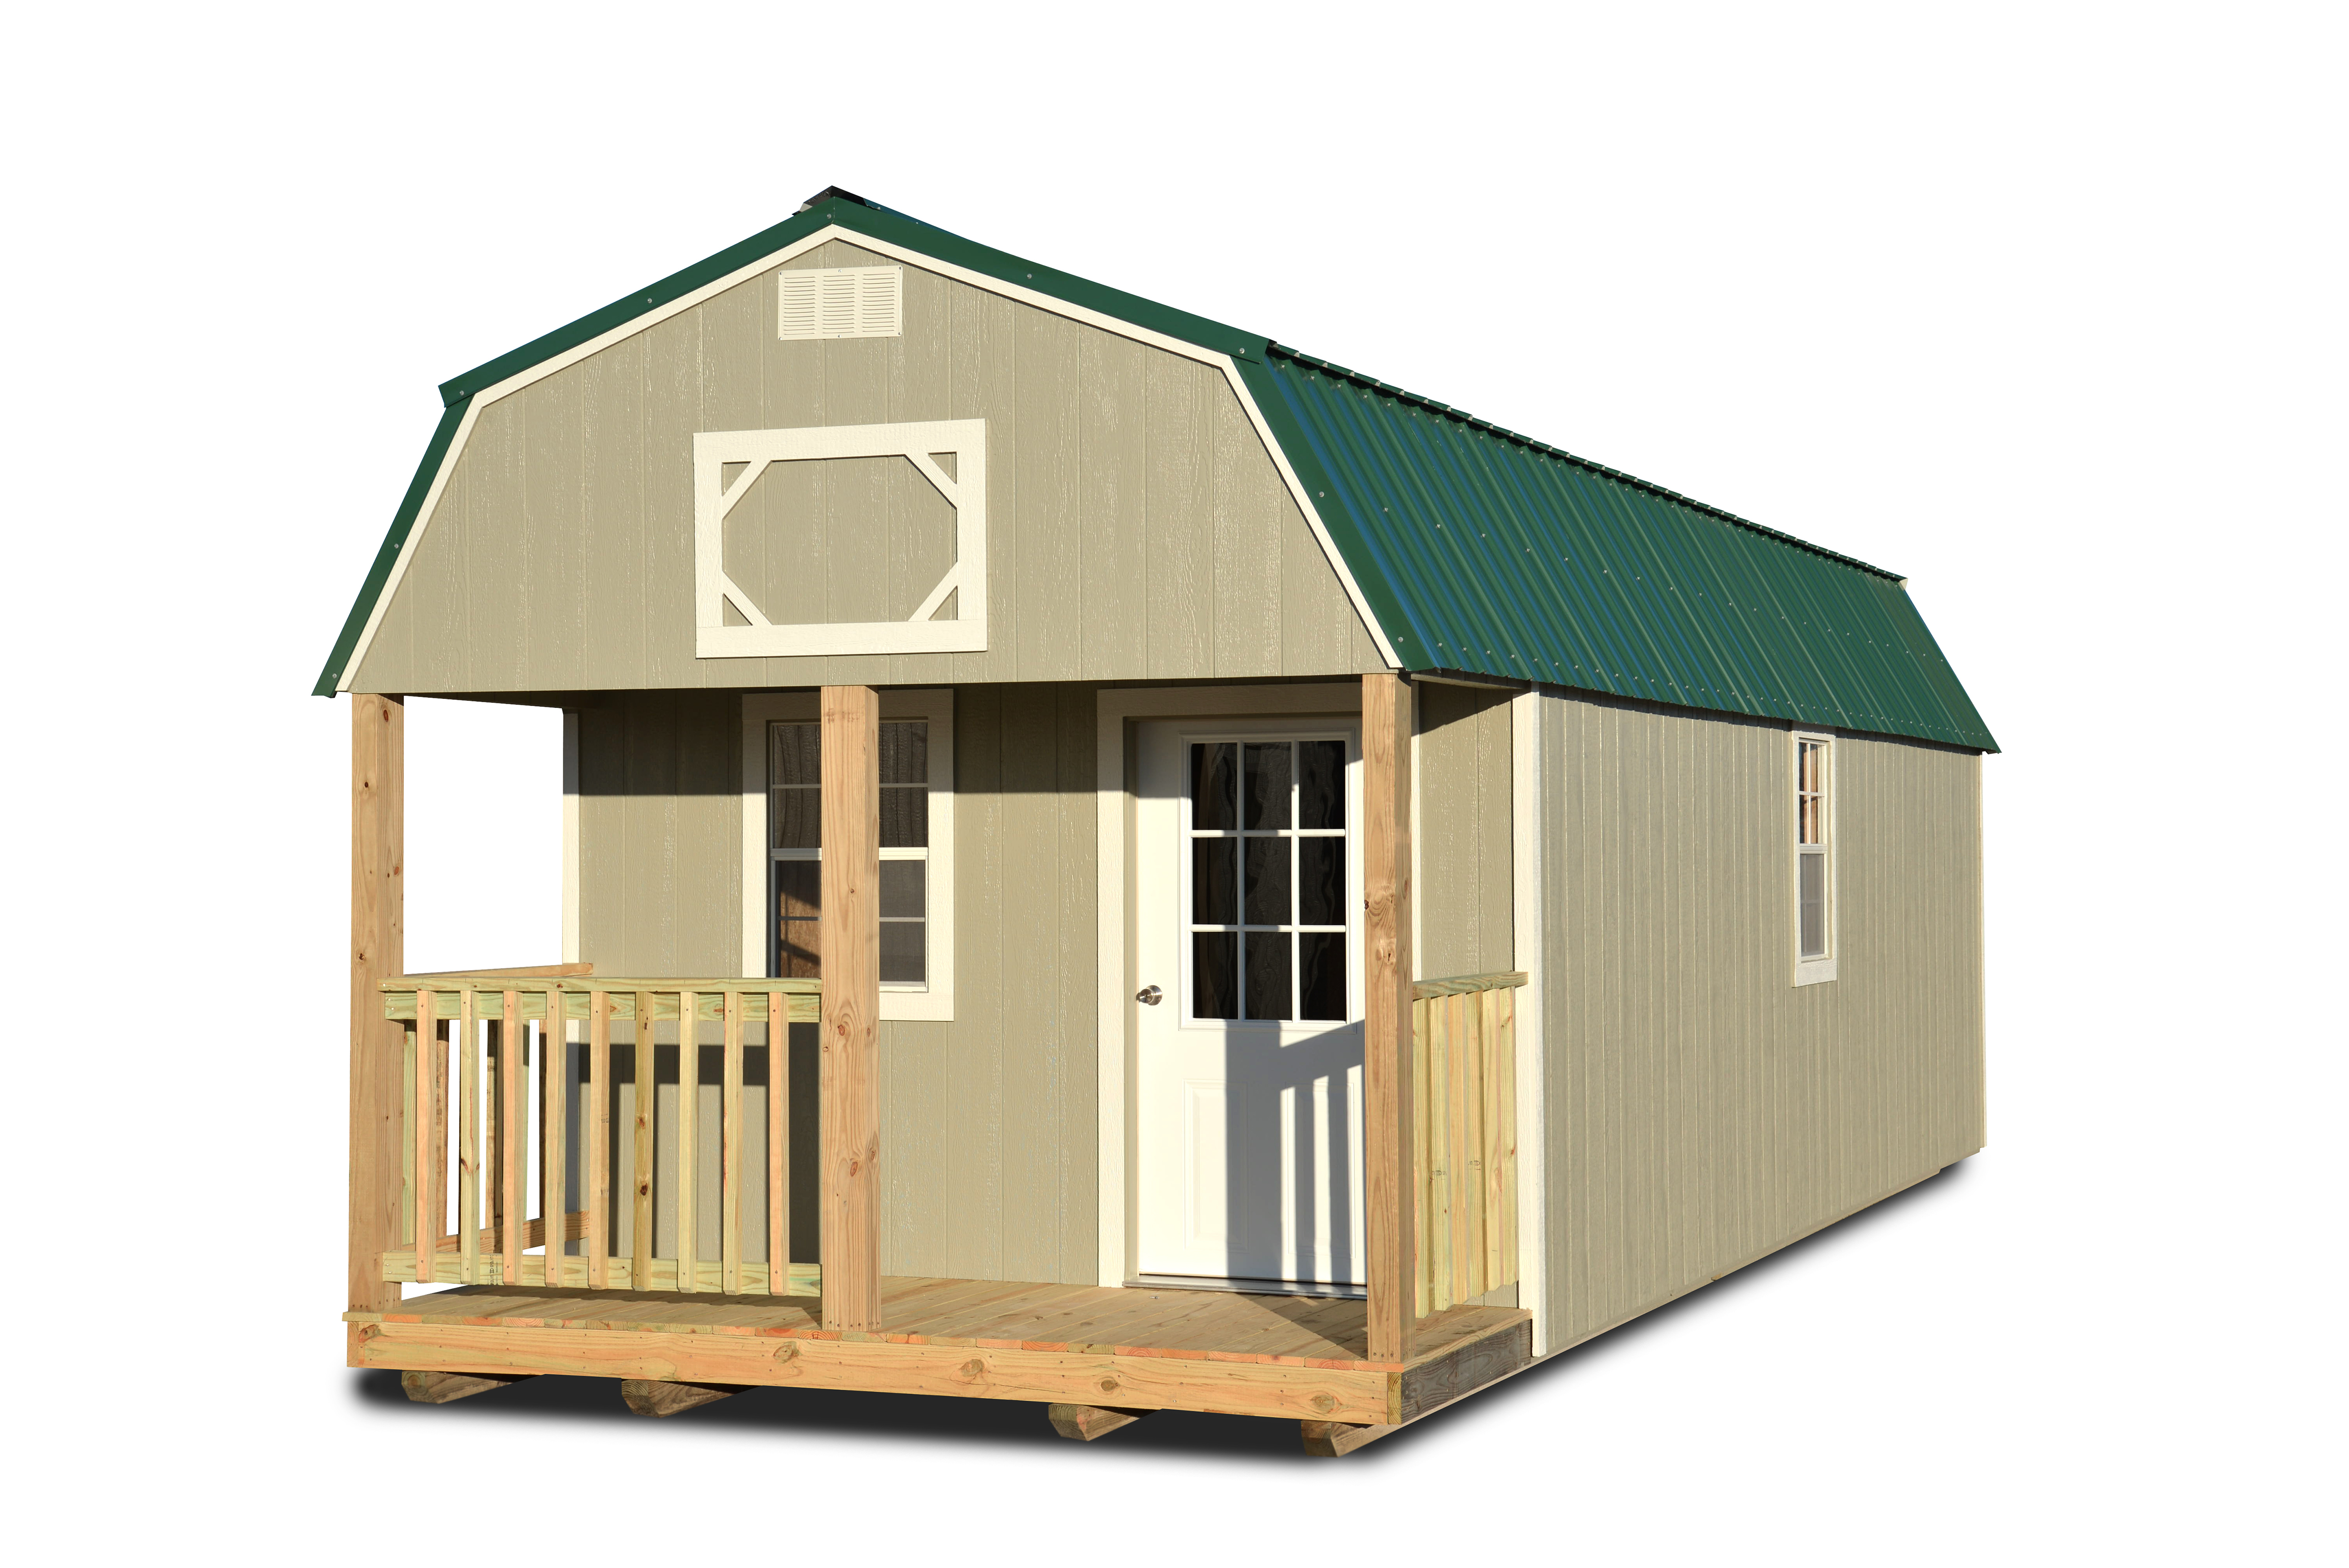 Painted Lofted Barn Cabin Taupe Cotton State Barns